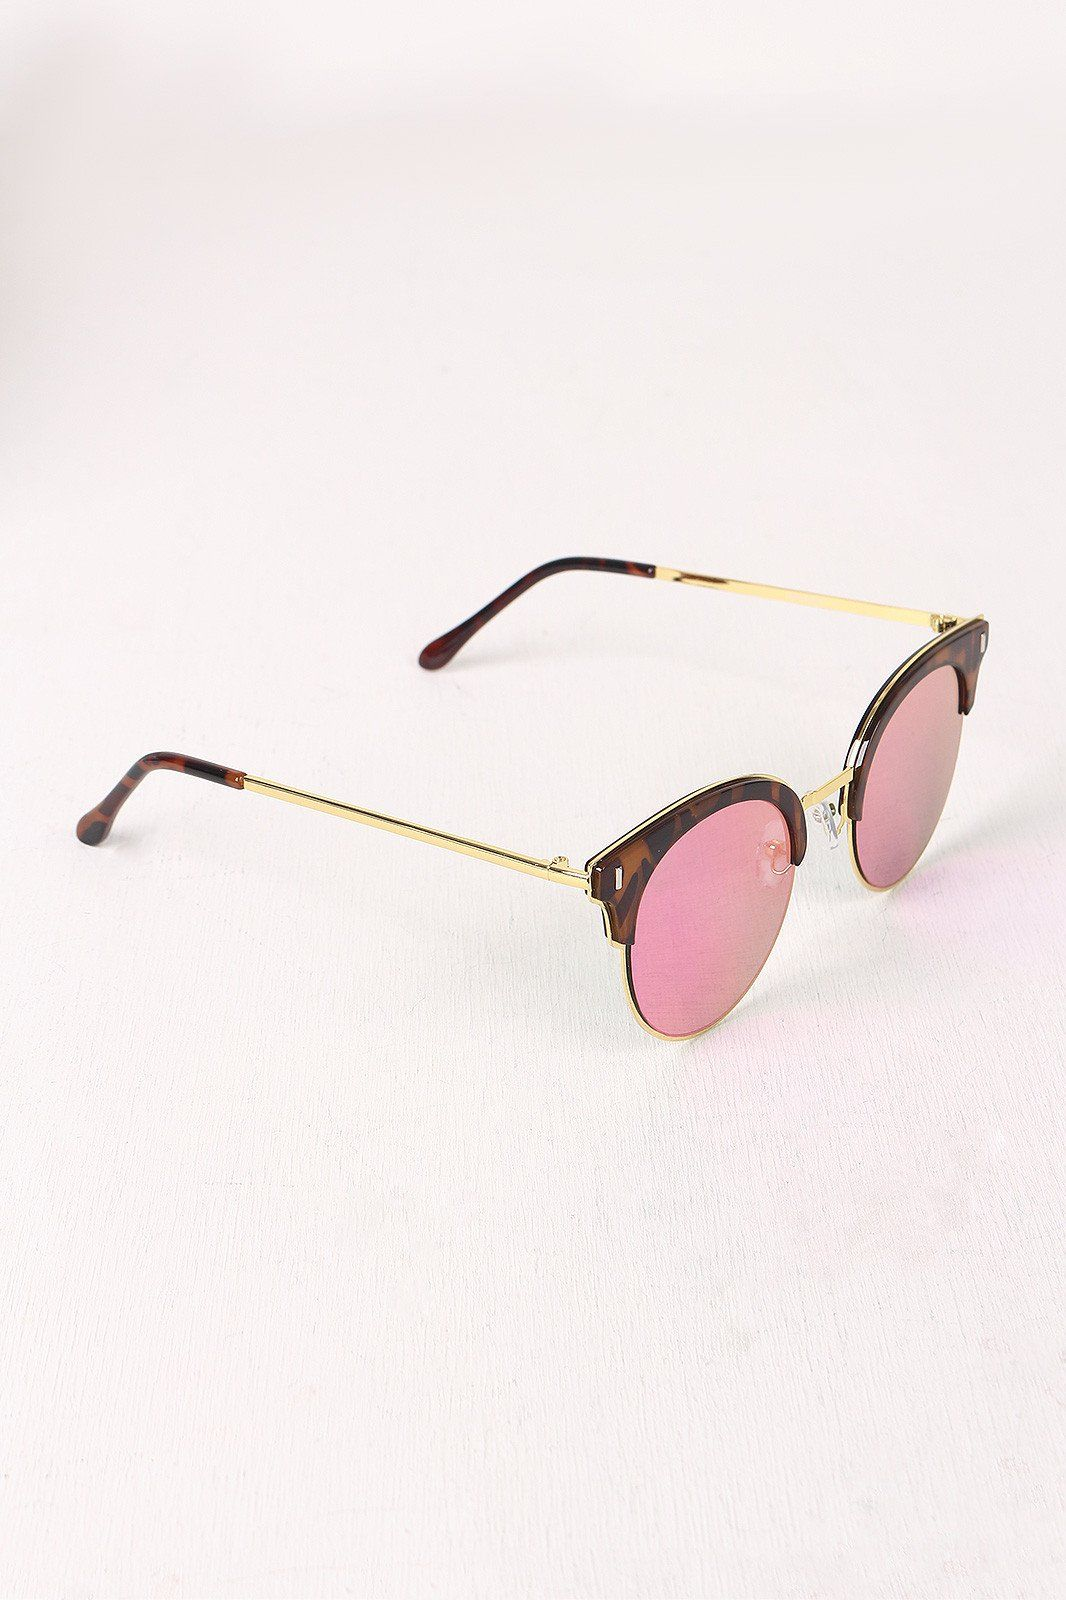 Round Clubmaster Sunglasses. These clubmaster-style sunglasses ...